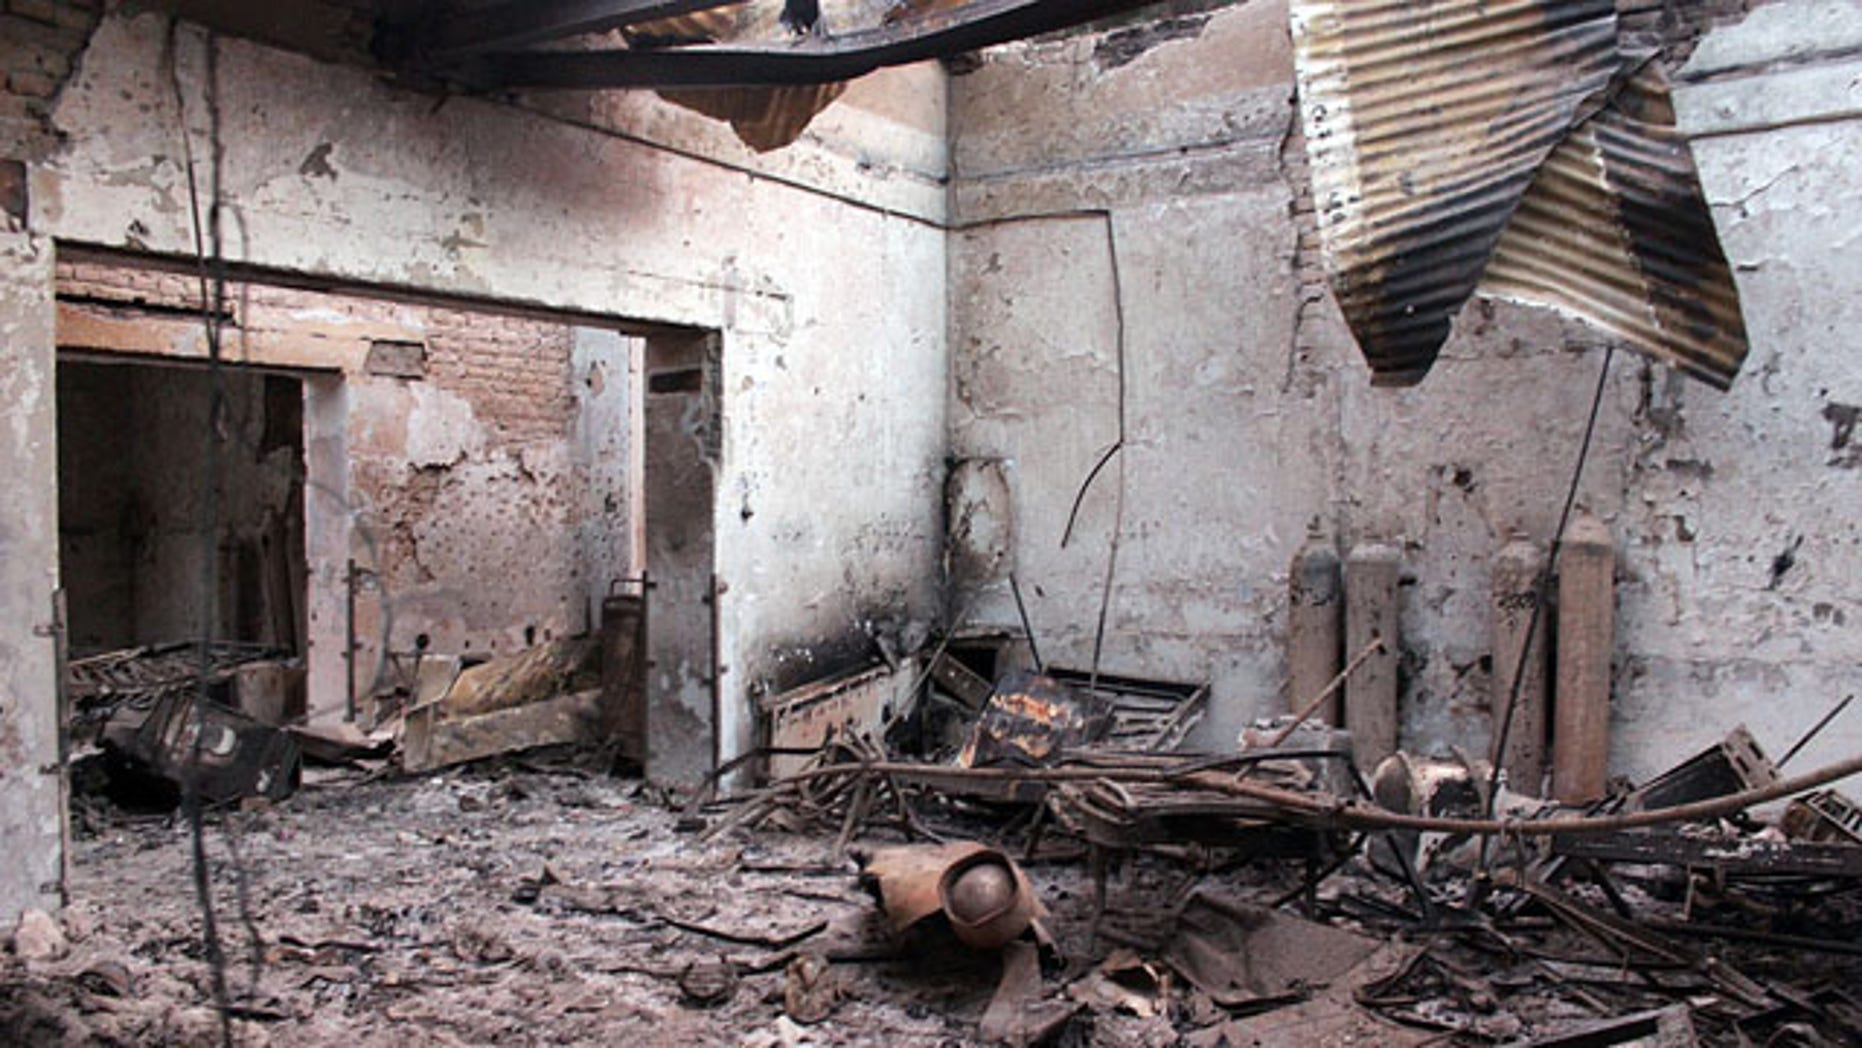 FILE - In this Oct. 16, 2015 file photo, the charred remains of the Doctors Without Borders hospital is seen after being hit by a U.S. airstrike in Kunduz, Afghanistan. (Najim Rahim via AP, File)